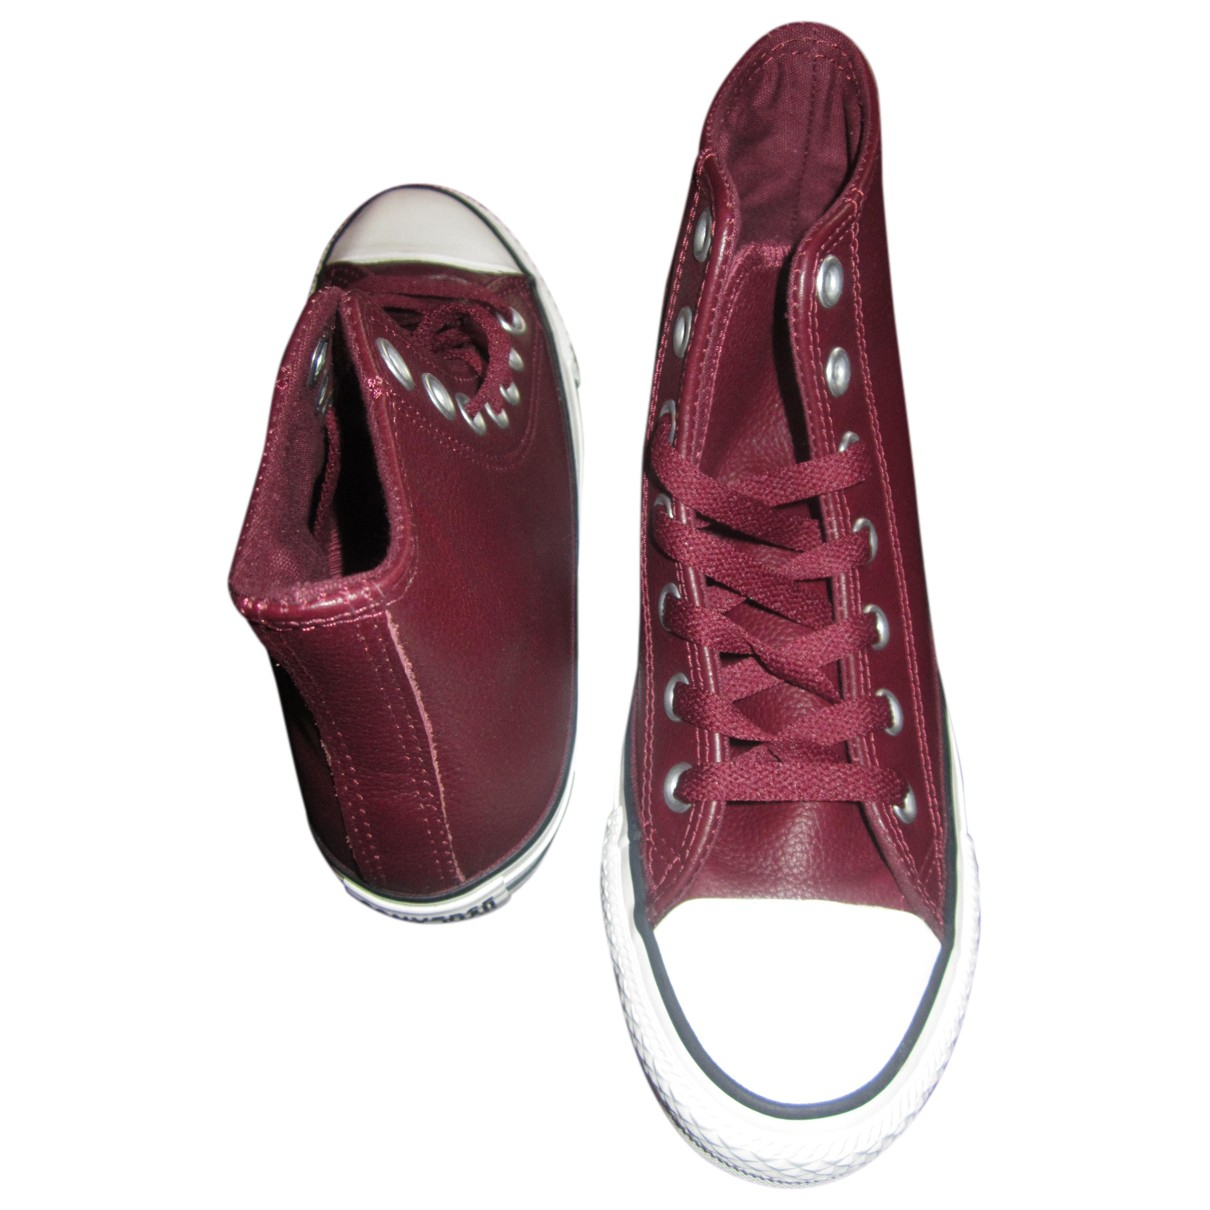 Converse N Burgundy Leather Trainers for Women 36 EU